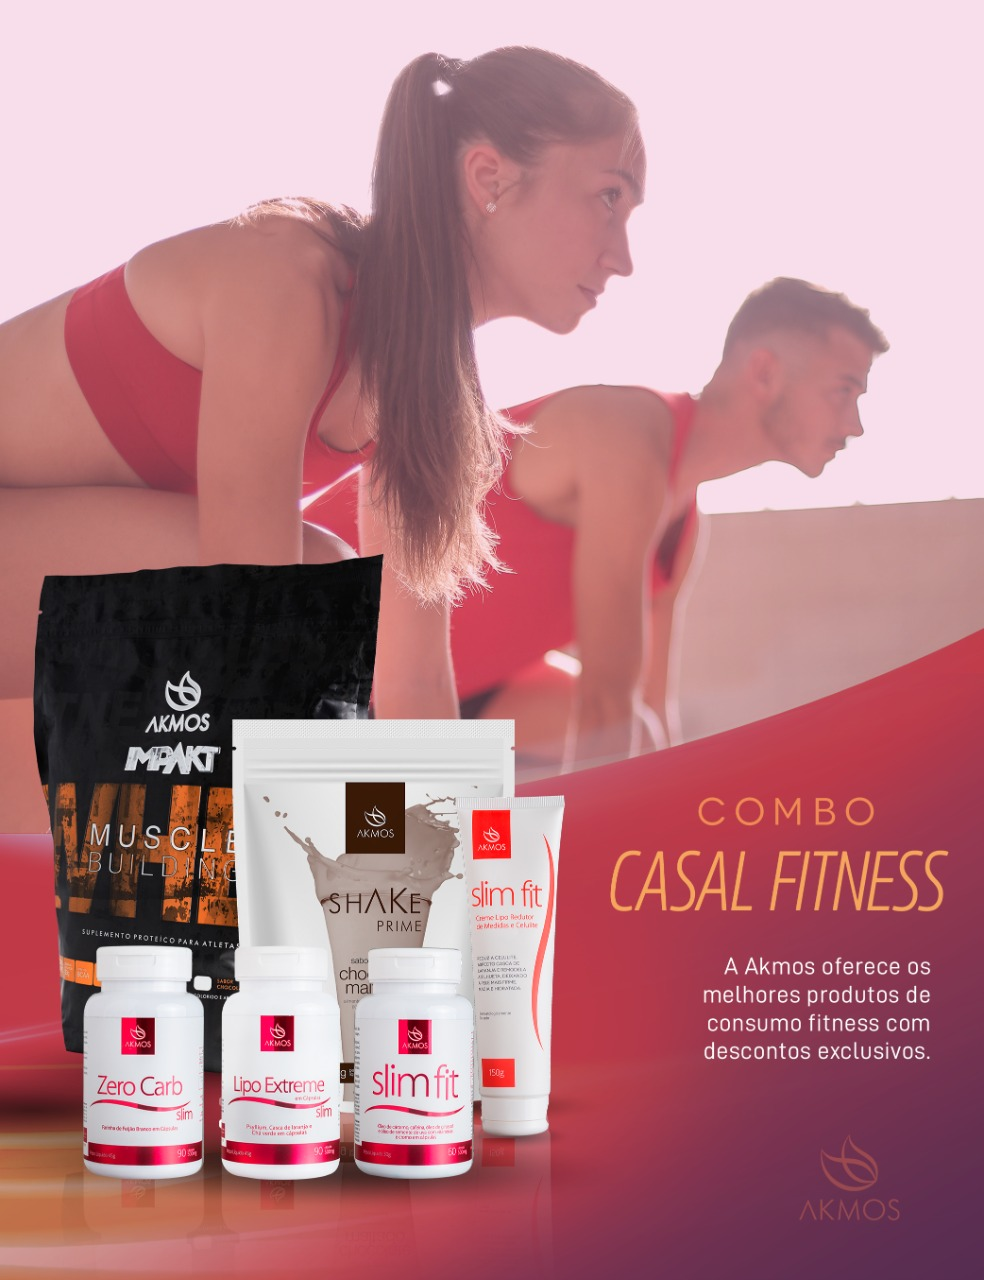 COMBO CONSUMO INTELIGENTE CASAL FITNESS  - WHEY PROTEIN CHOCOLATE + SHAKE  PRIME ABACAXI COM HORTELA Akmos